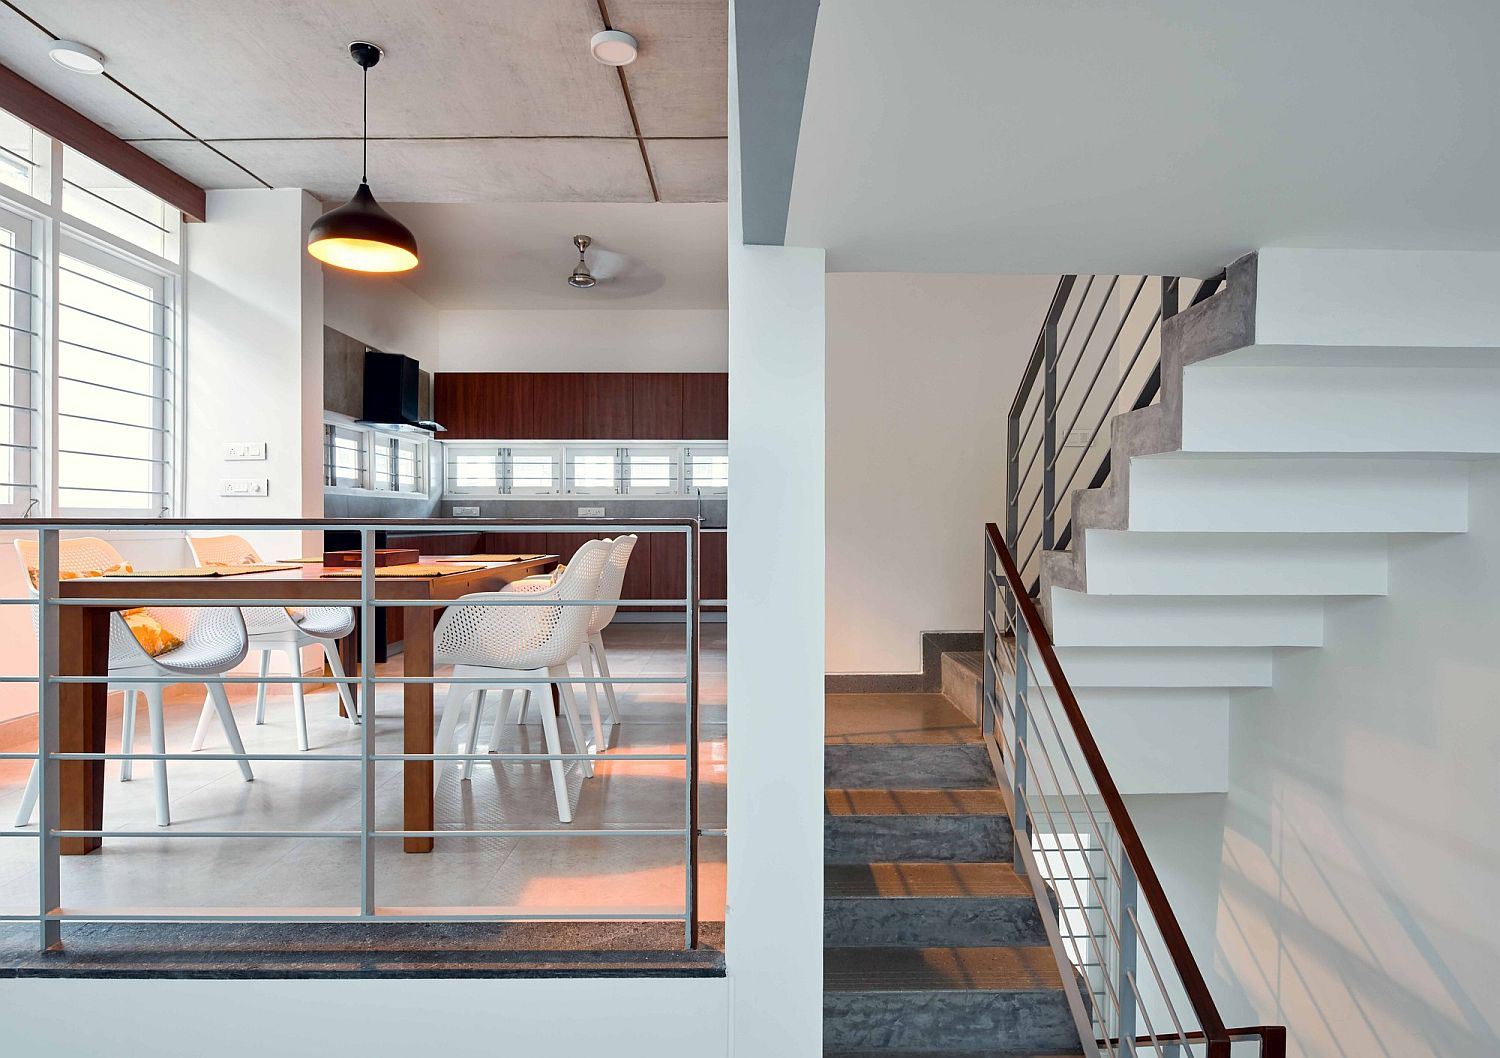 Split level dining area and kitchen of the House S